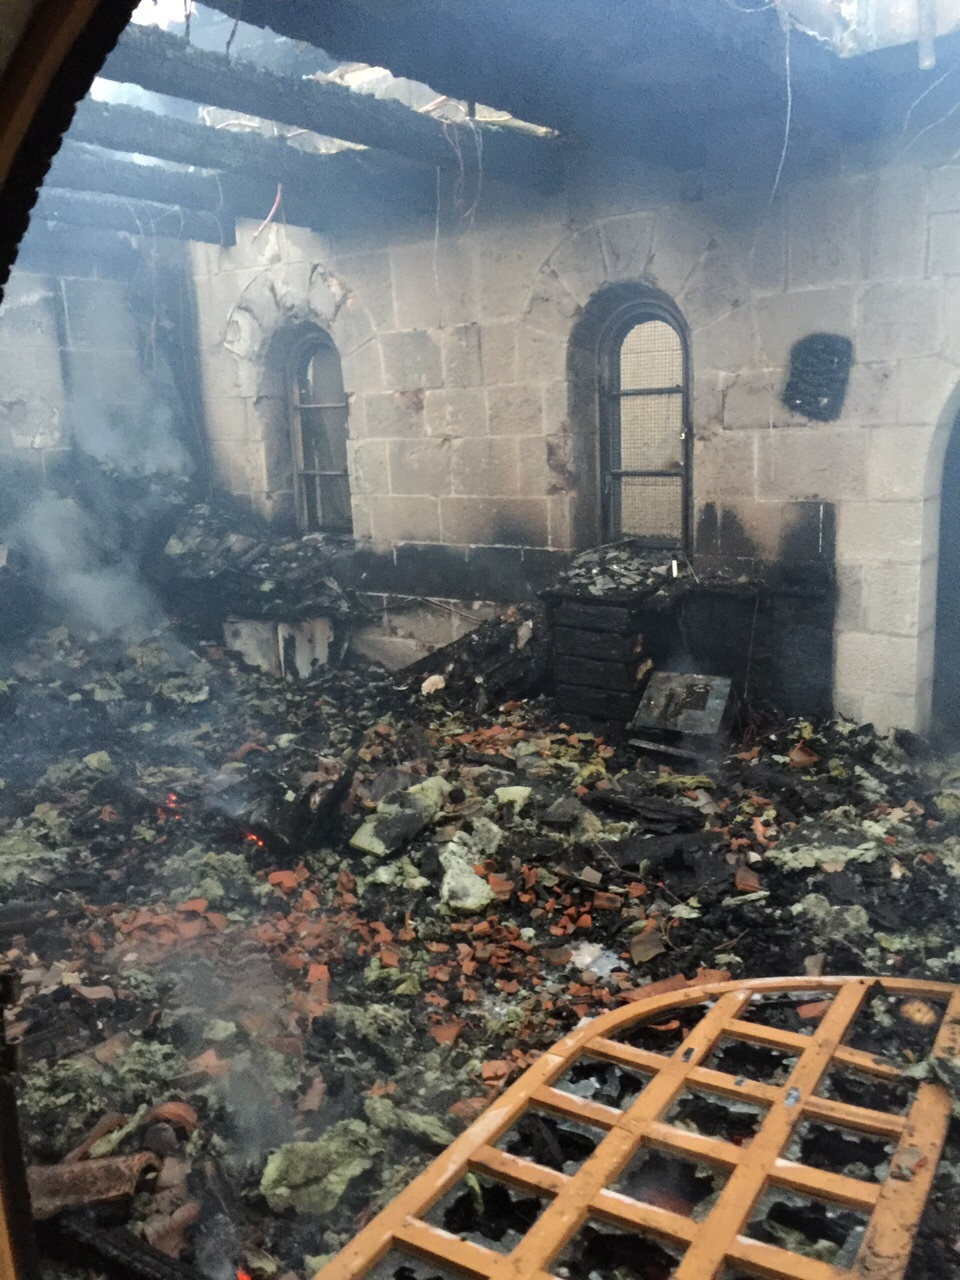 Fire guts Church in Galilee